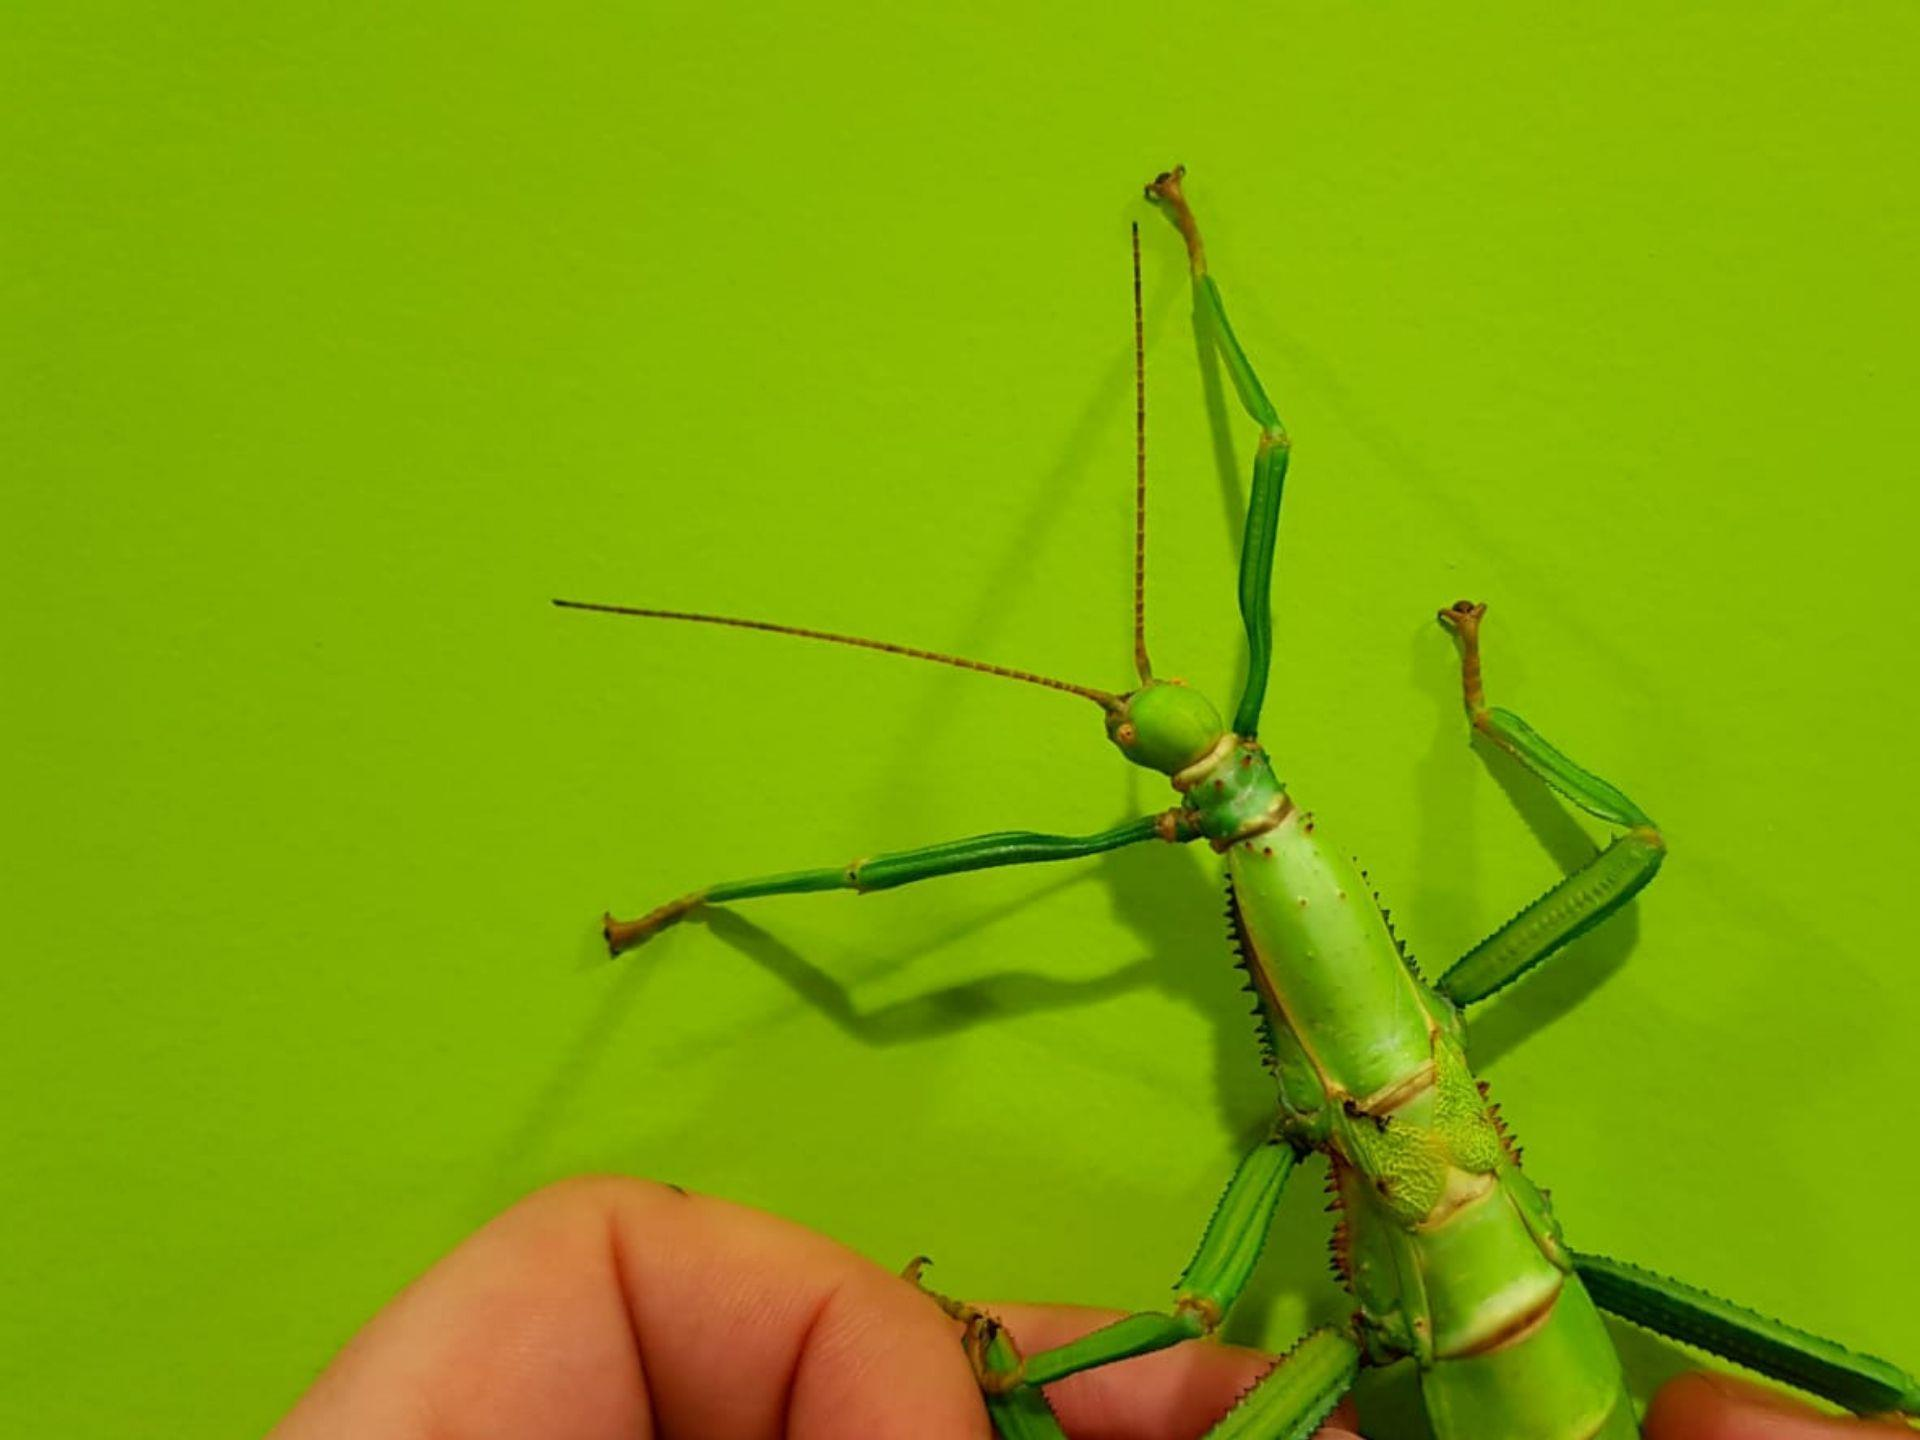 The Bug Farm green bean stick insect